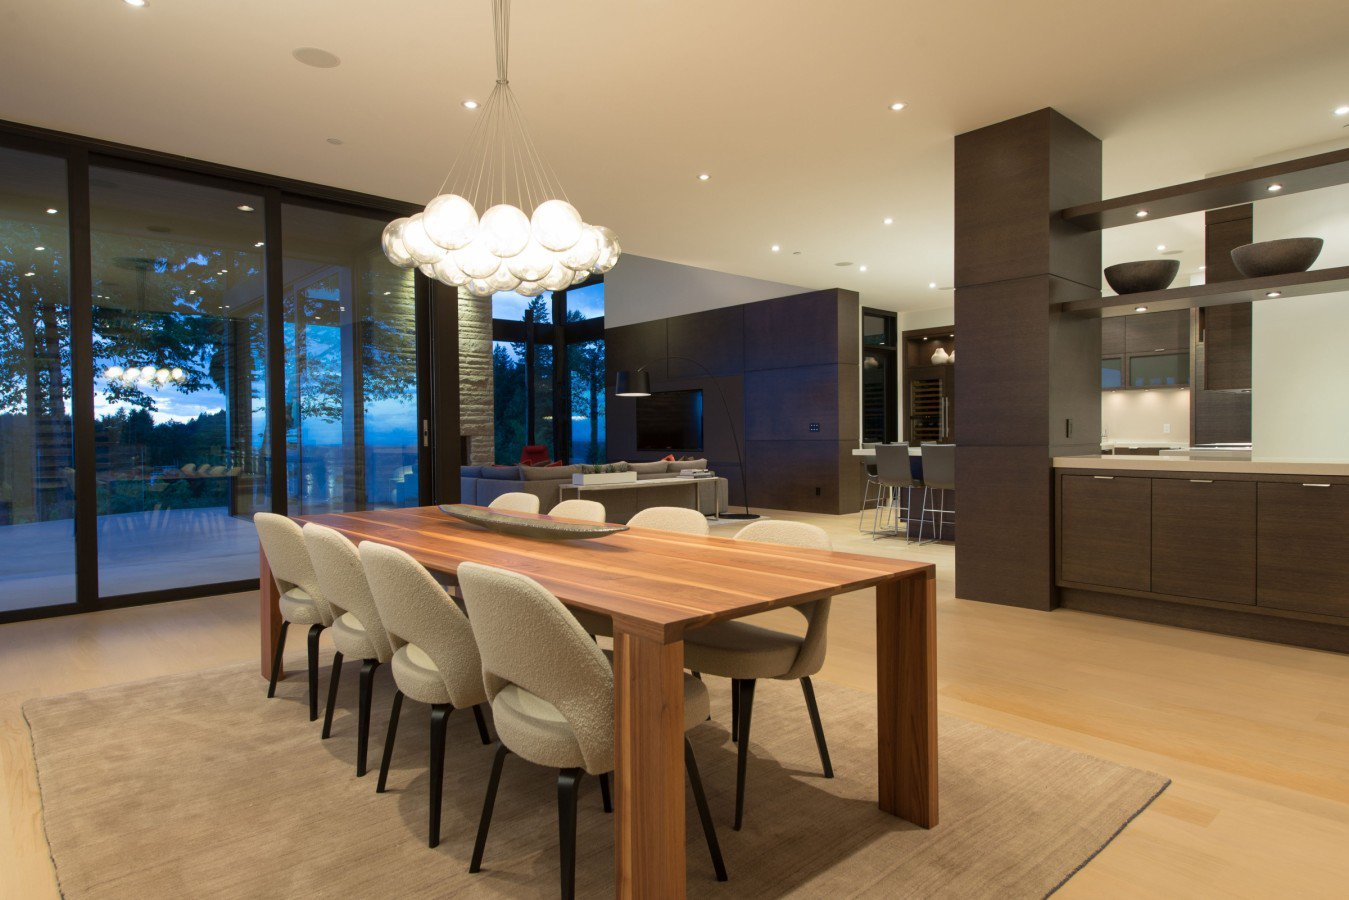 Burkehill Residence By Craig Chevalier And Raven Inside Interior - Burkehill residence canada